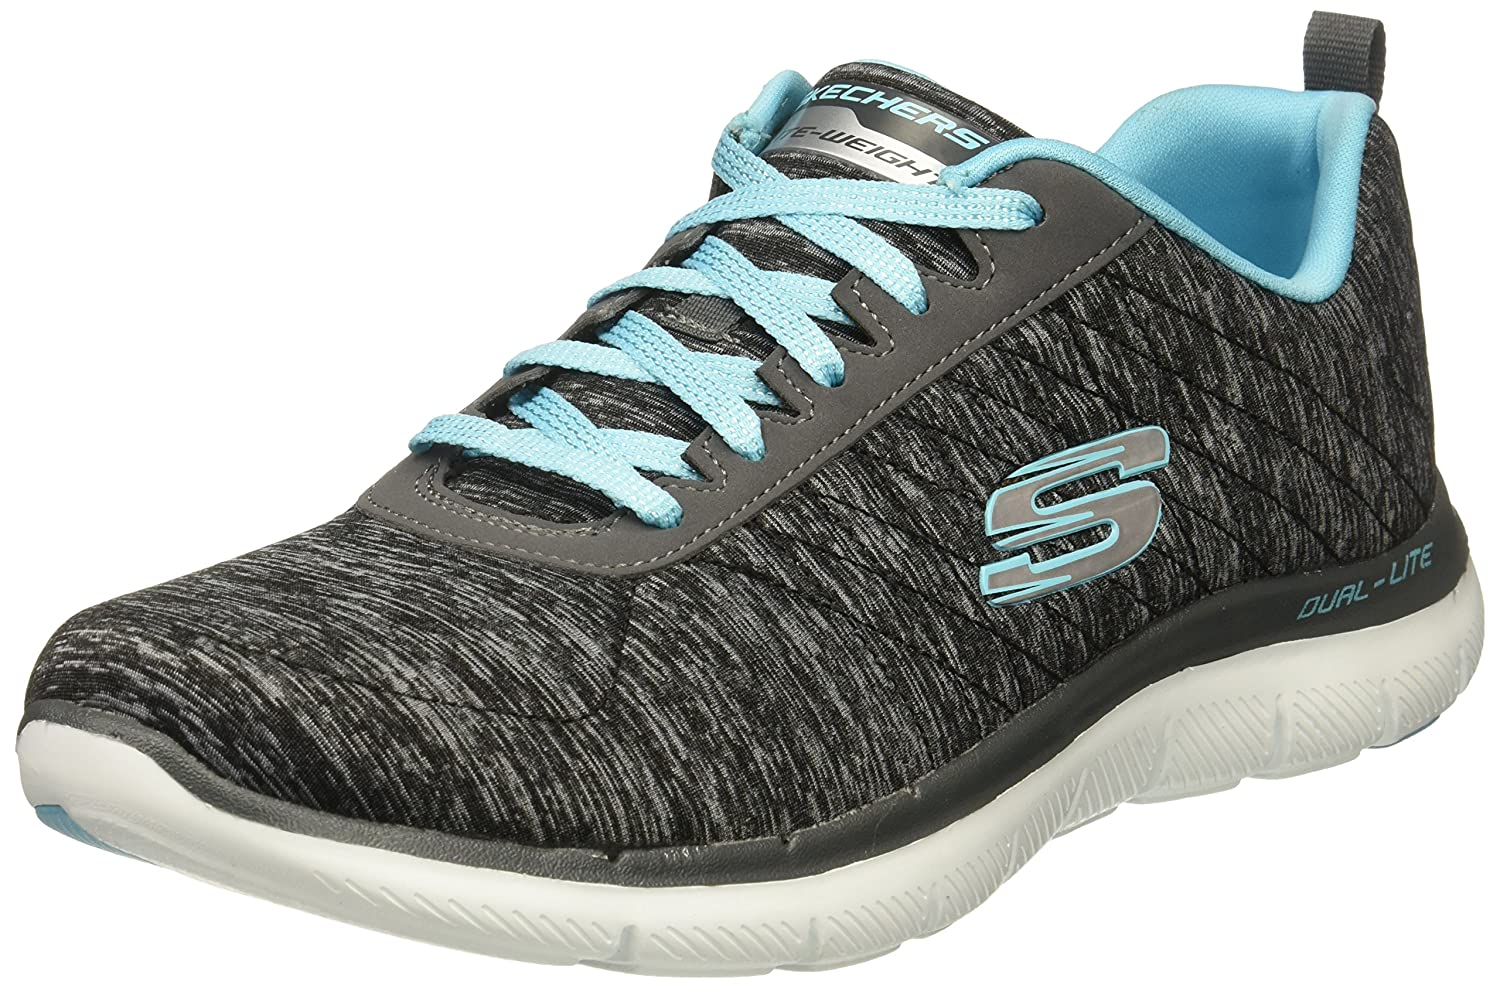 565dd05250c Skechers Flex Appeal 2.0 High Energy